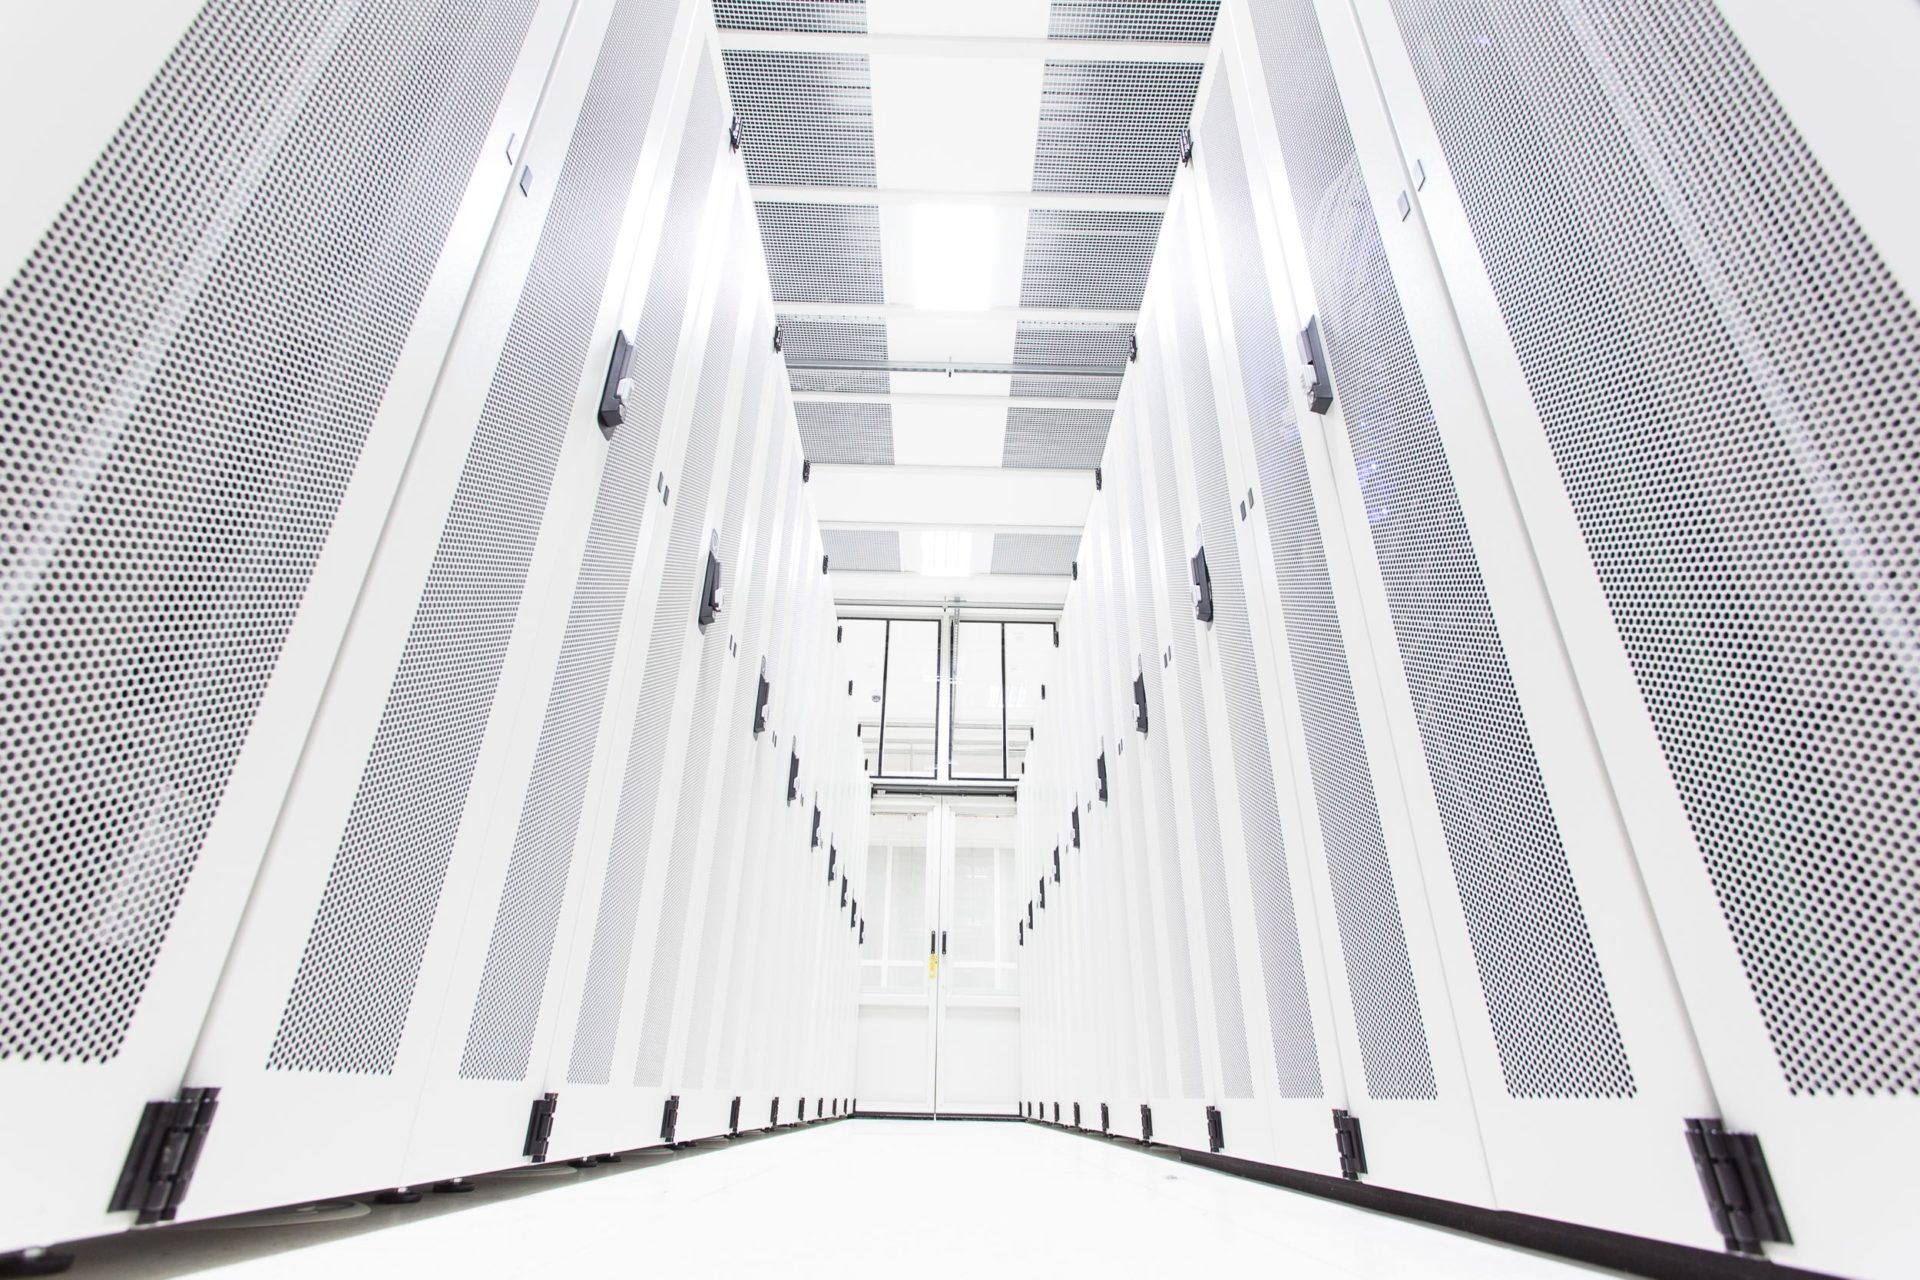 Failover Architectures: the Infrastructural Excess of the Data Centre Industry